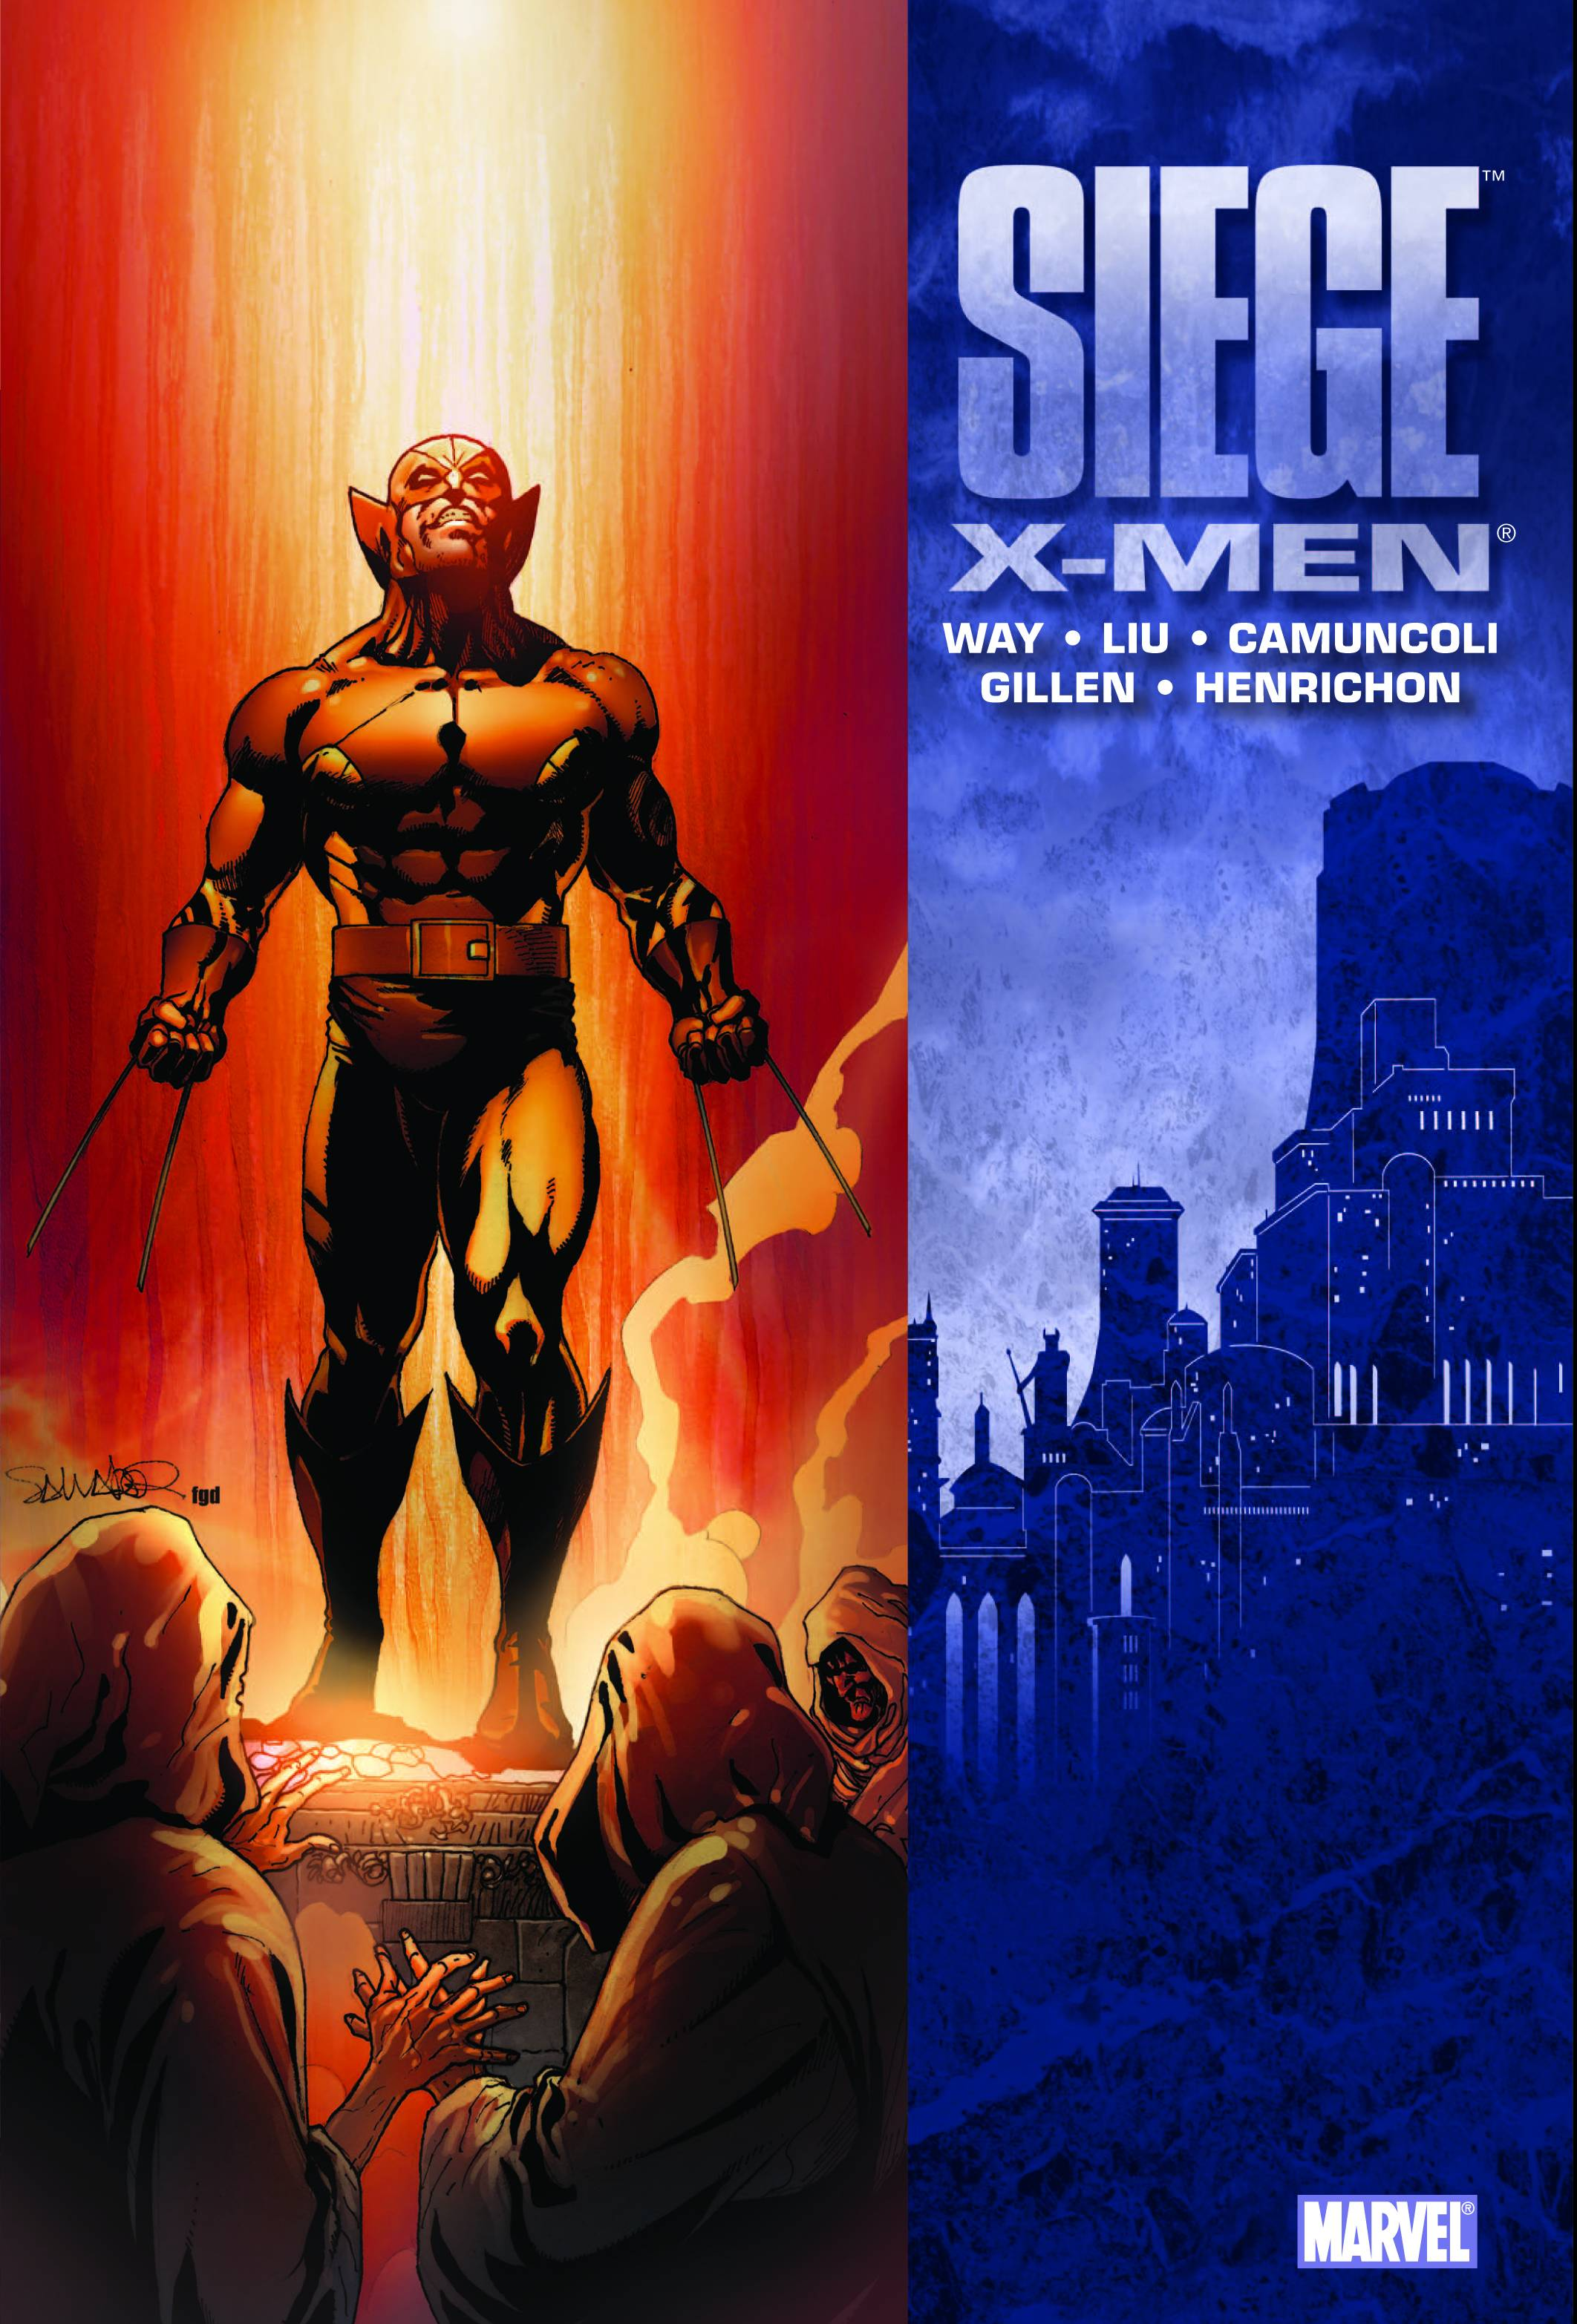 SIEGE X-MEN PREM HC 2010